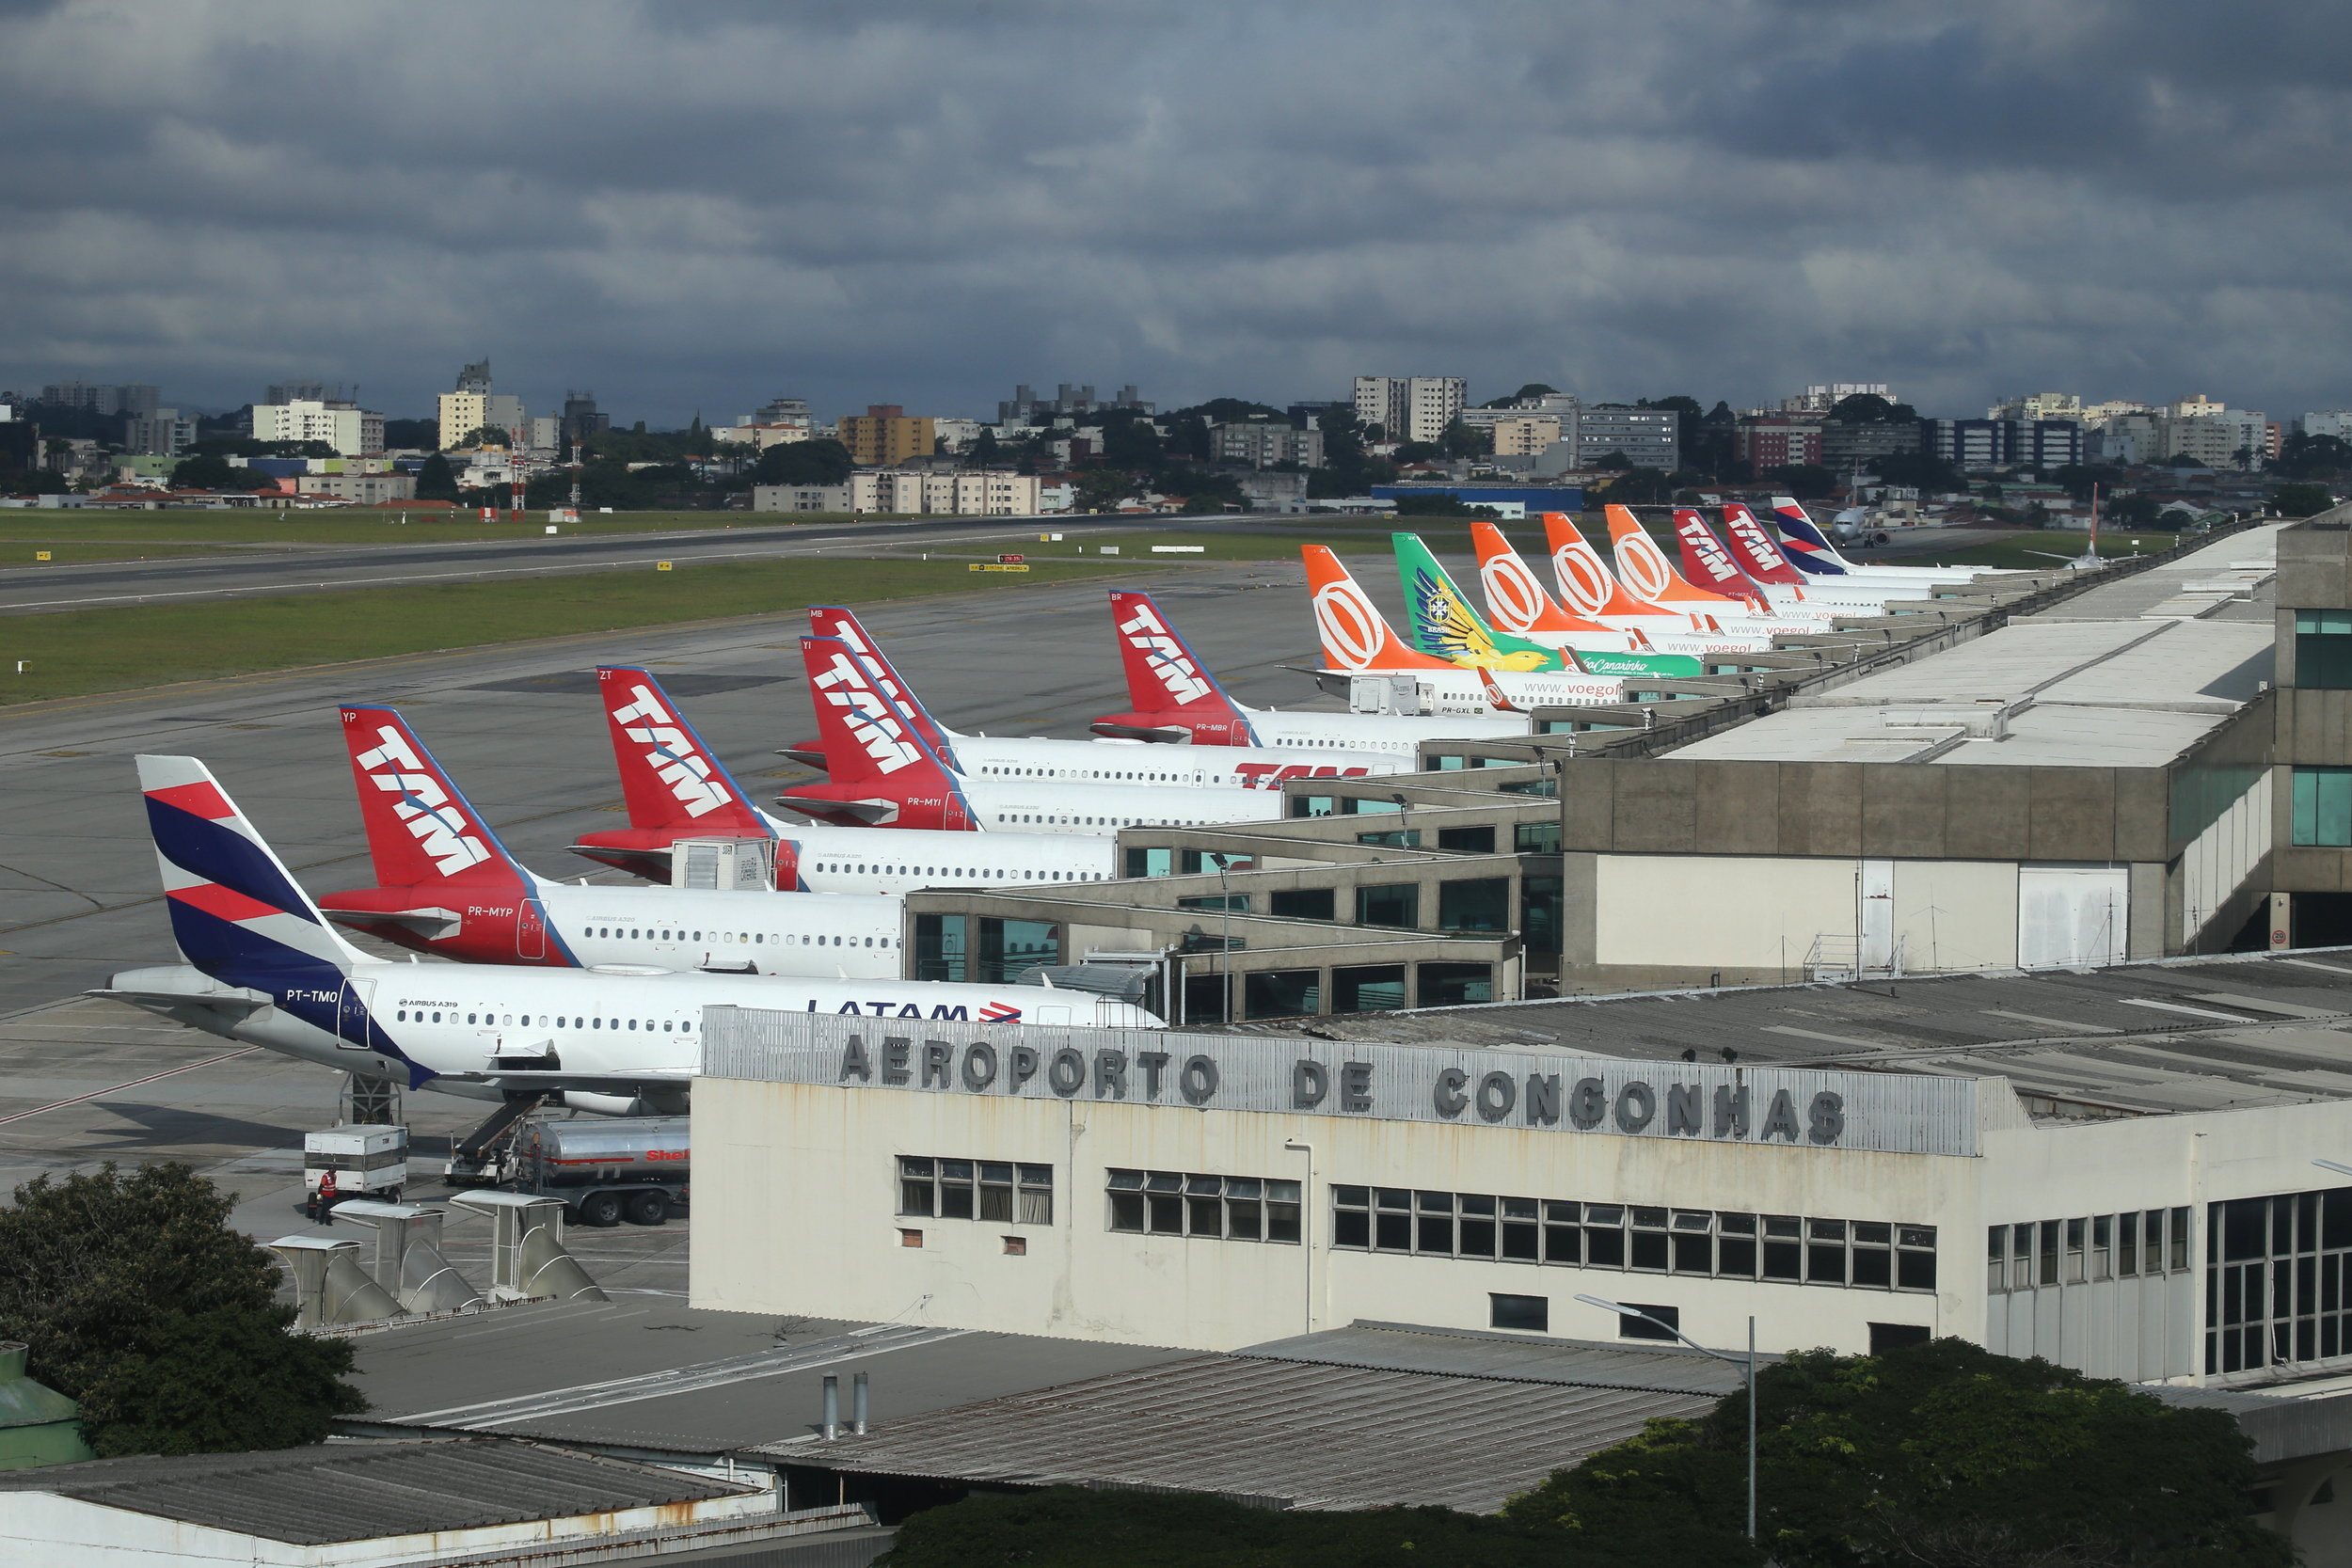 Packed terminal taken from the Slaveiro Slim hotel at Sao Paulo Congonhas Airport 29th April 2019 by John Wood